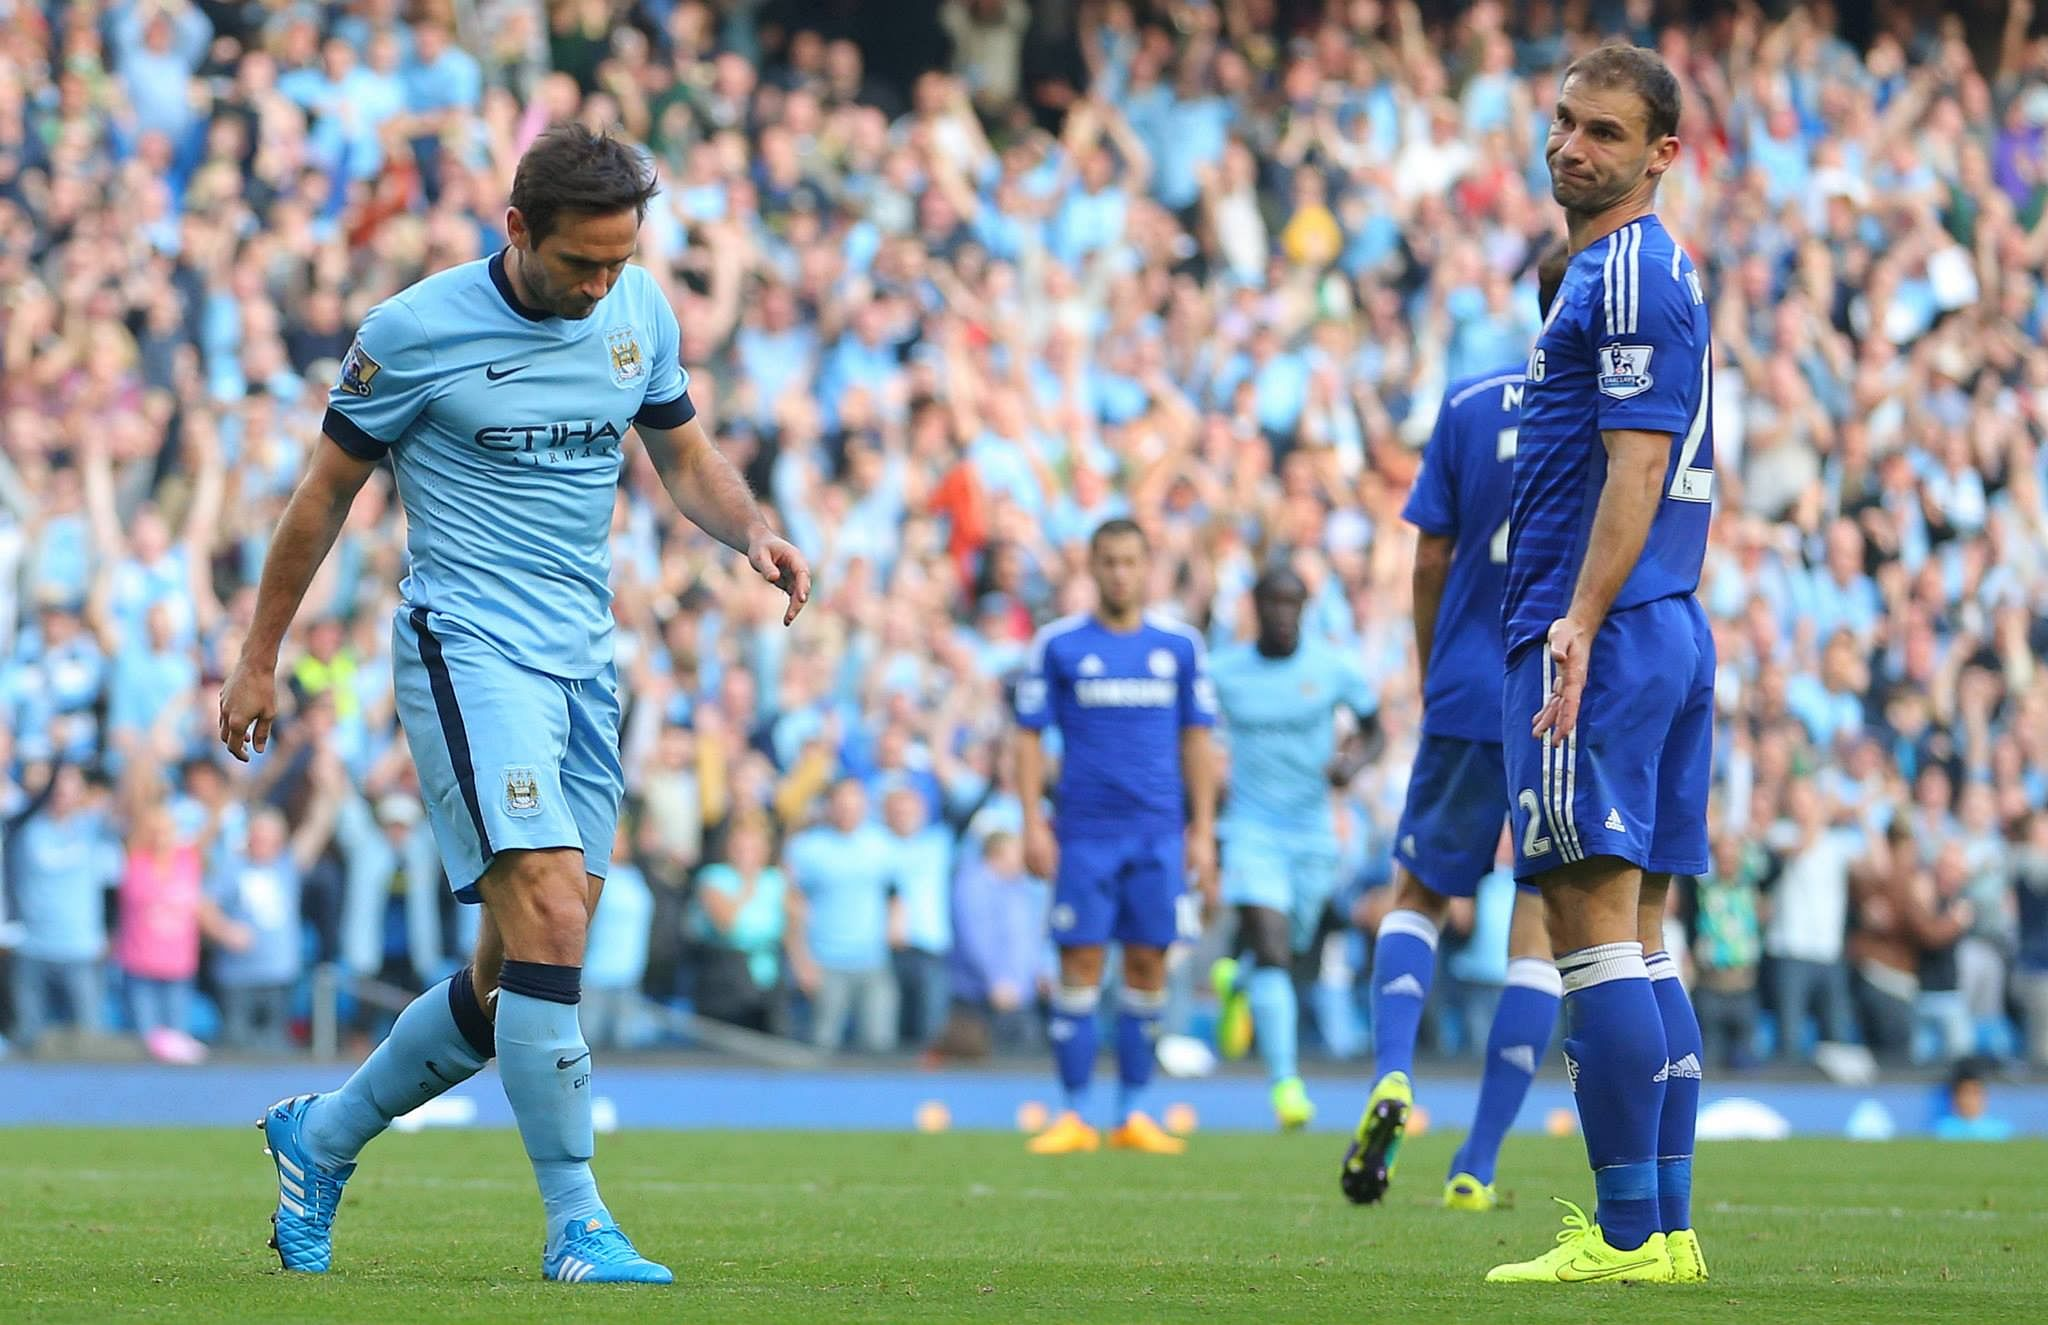 Frank Lampard's goal against Chelsea creates new record